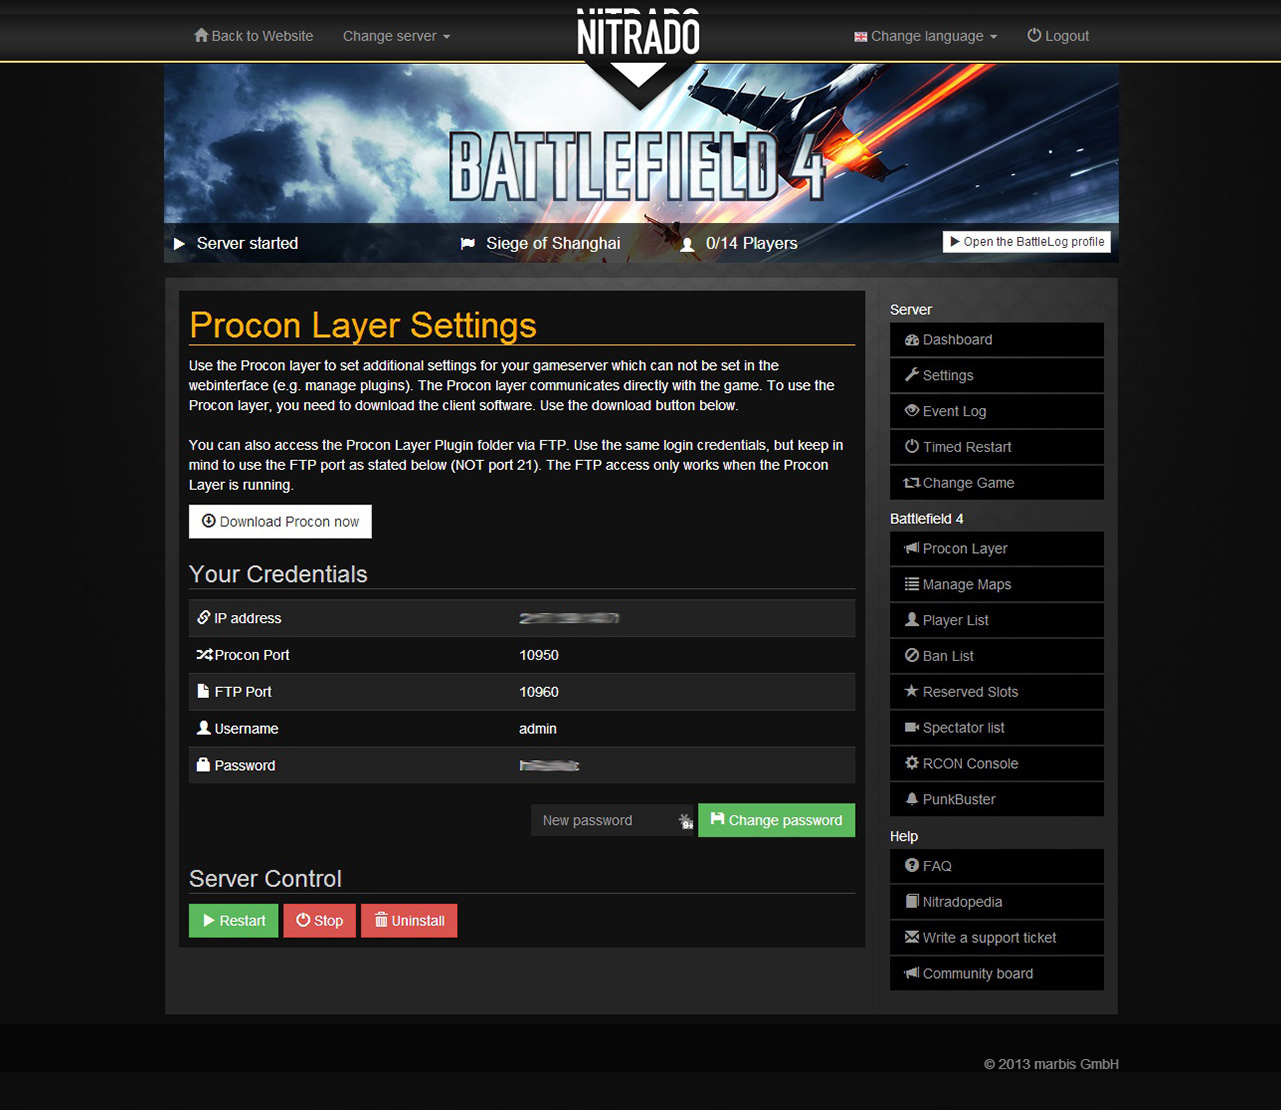 Battlefield 4 rent game server | nitrado net